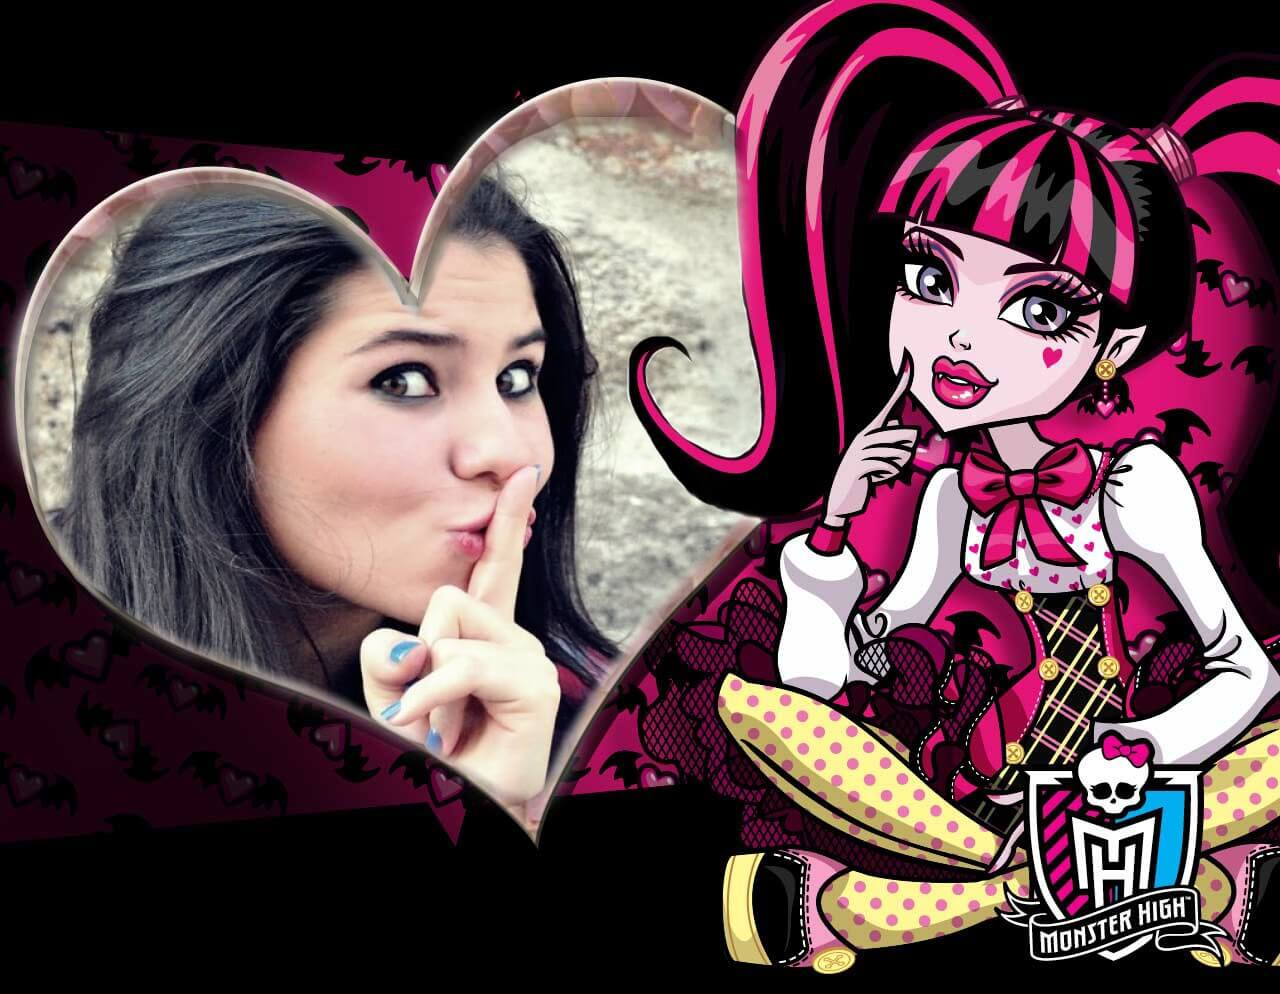 marco-fotos-monster-high-draculaura-com-coracao